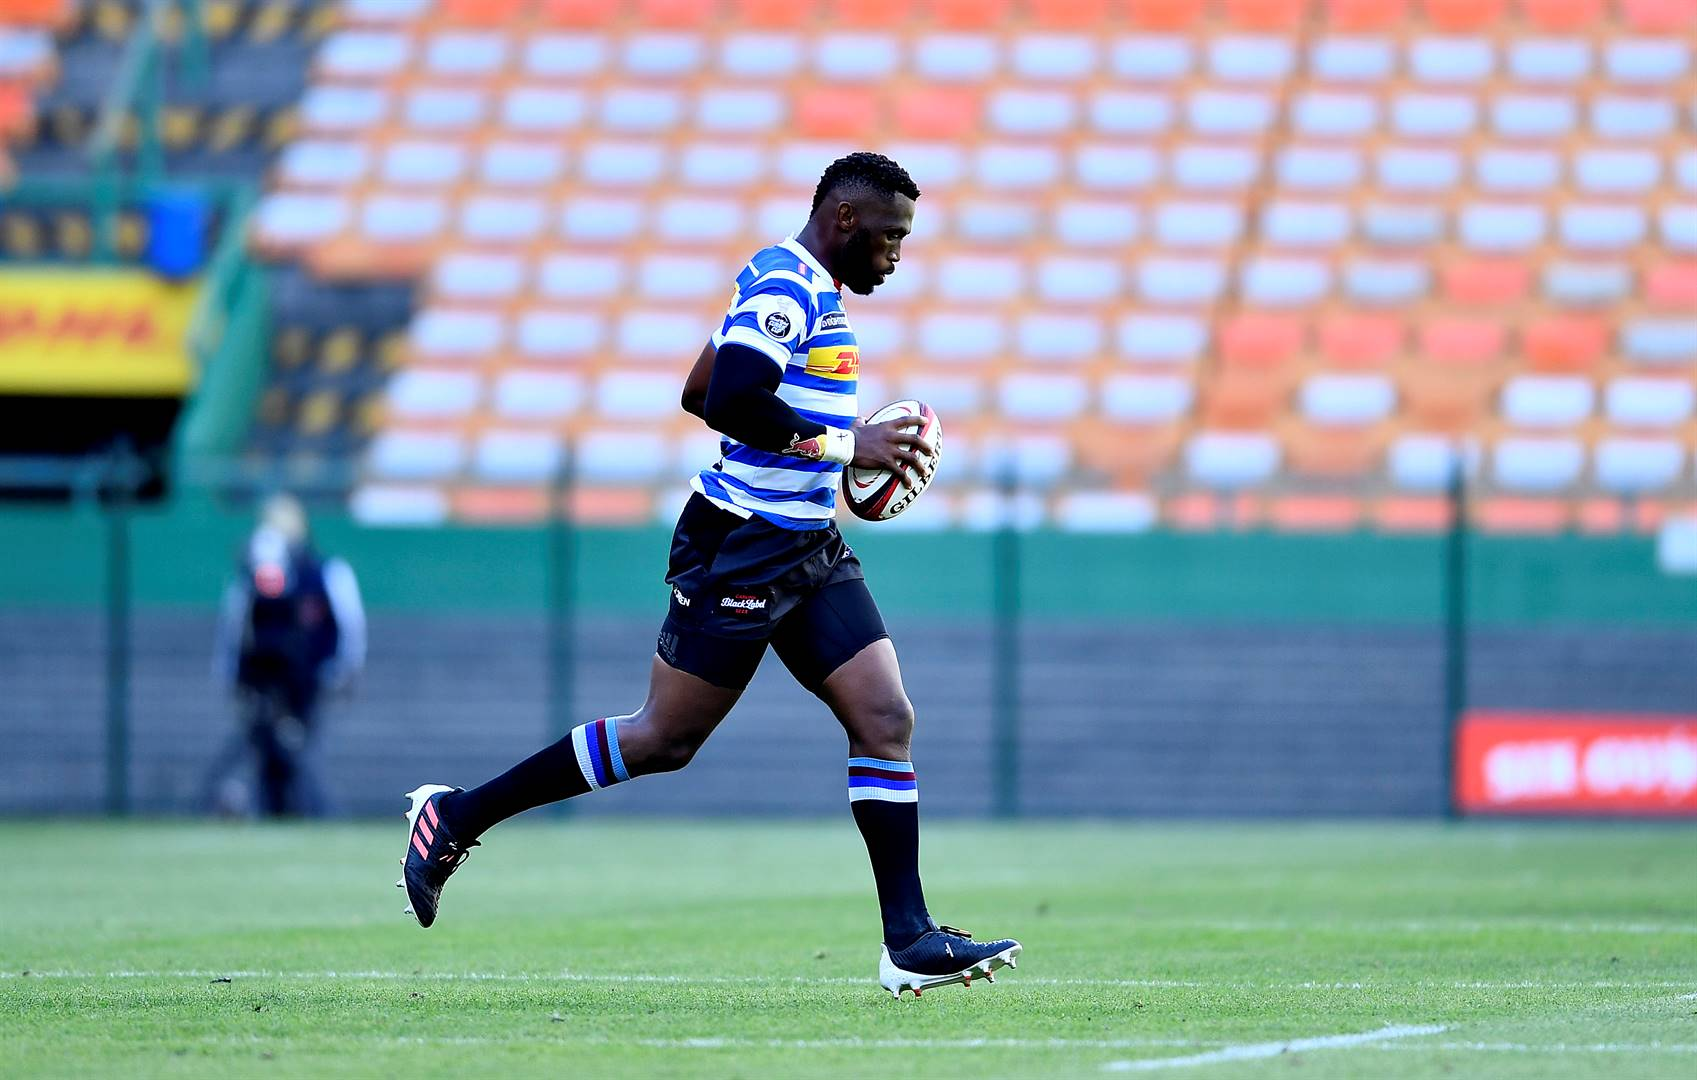 One thing nobody can dispute is that the quality of Kolisi's on-field performances has fallen off a cliff. Picture: Gallo Images